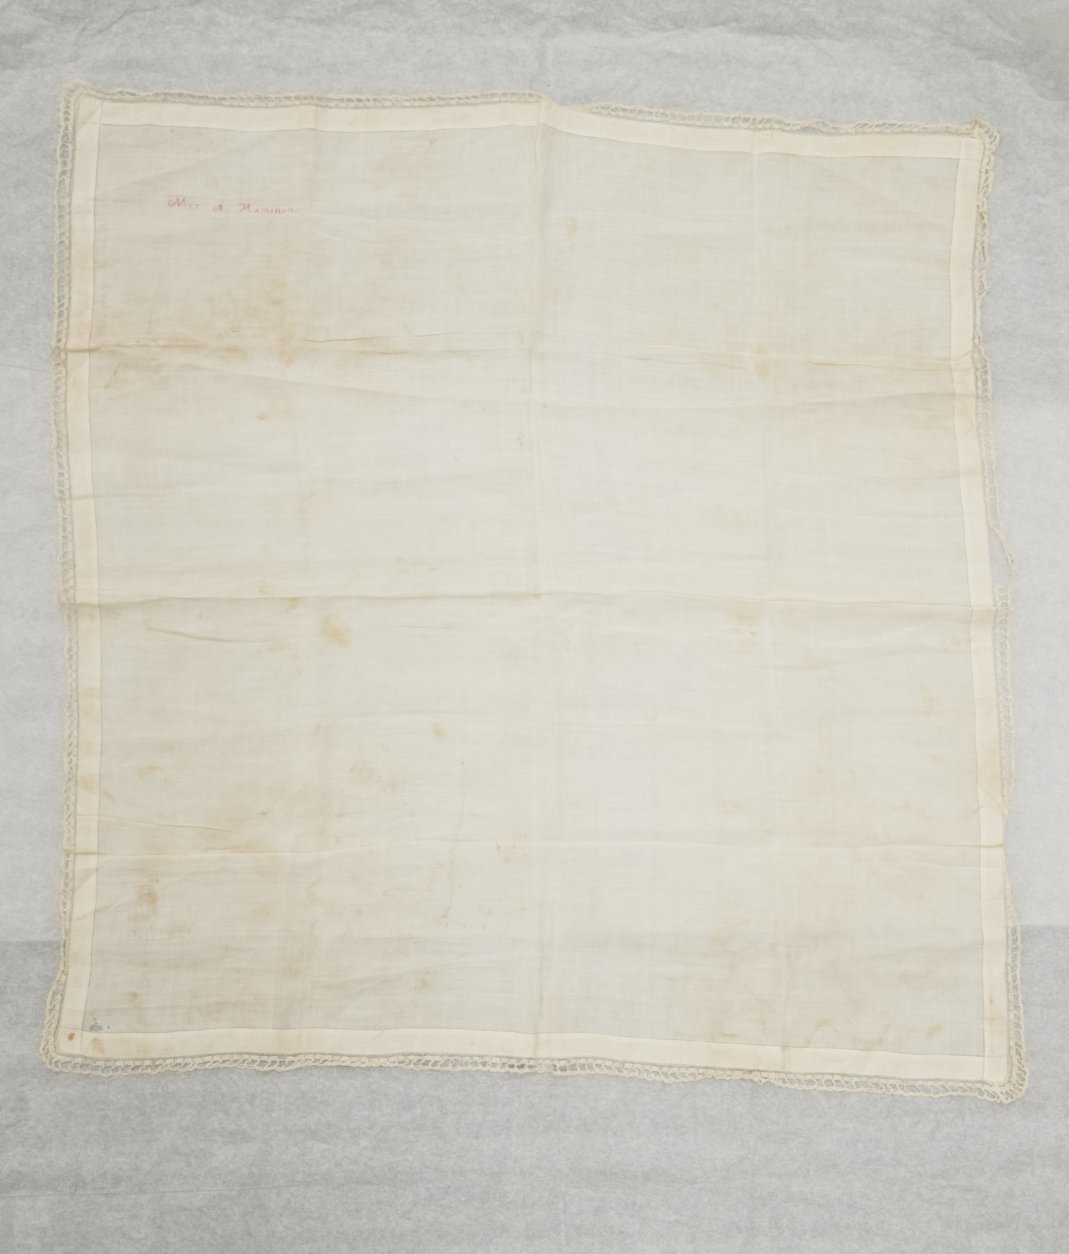 """Shown is Alexander Hamilton's window Elizabeth Hamilton's handkerchief embroidered with her name at the Museum of the American Revolution in Philadelphia, Monday, Nov. 12, 2018. This and other items loaned by the fifth great-grandson of Hamilton will be featured as part of the museum's """"Year of Hamilton."""" (AP Photo/Matt Rourke)"""